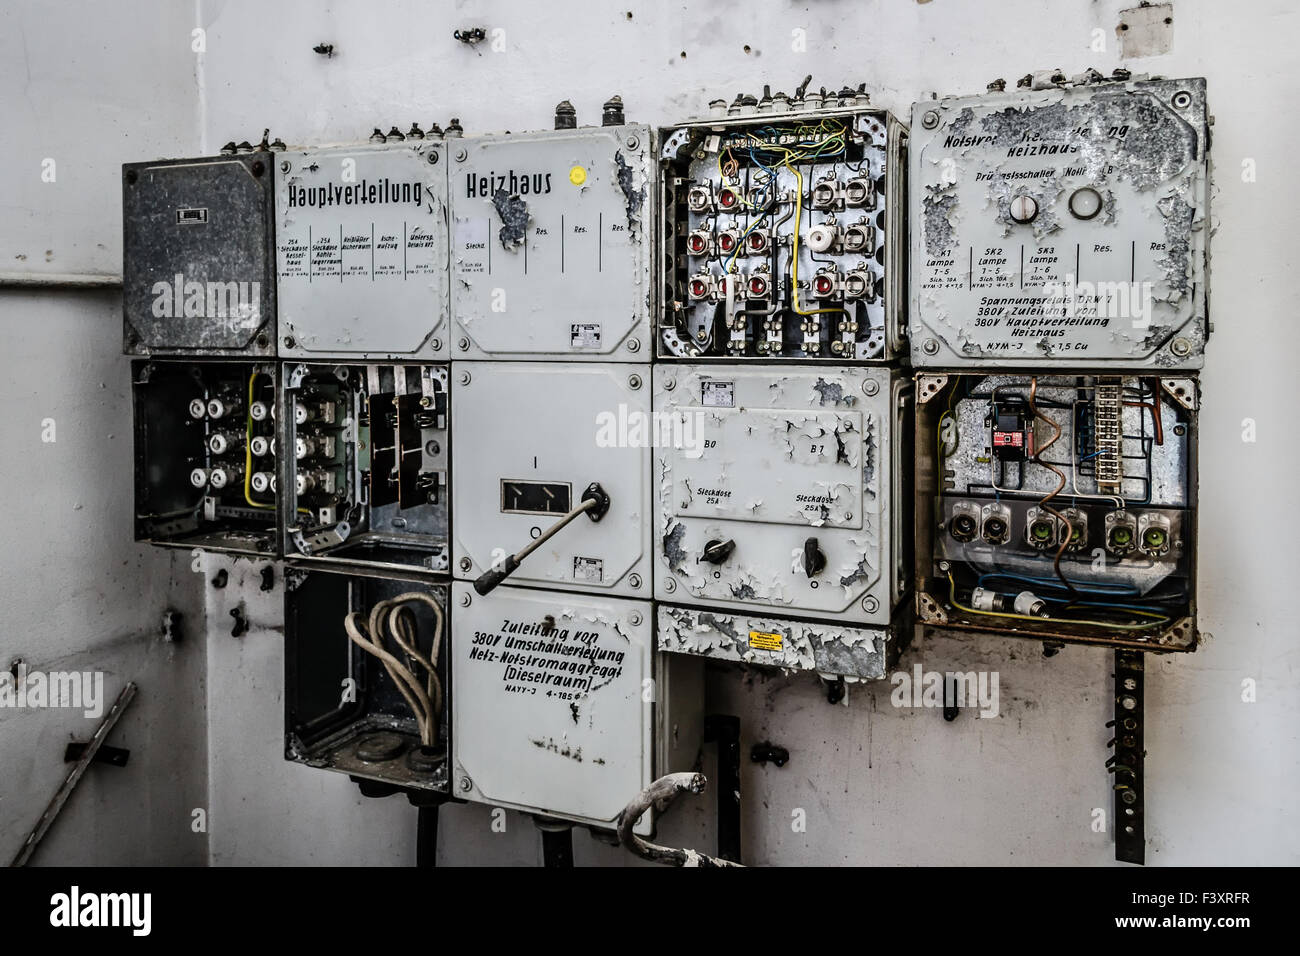 Older Fuse Box Wiring Schematics Diagram Pull Outs Old Detailed Diagrams Covers Stock Photos